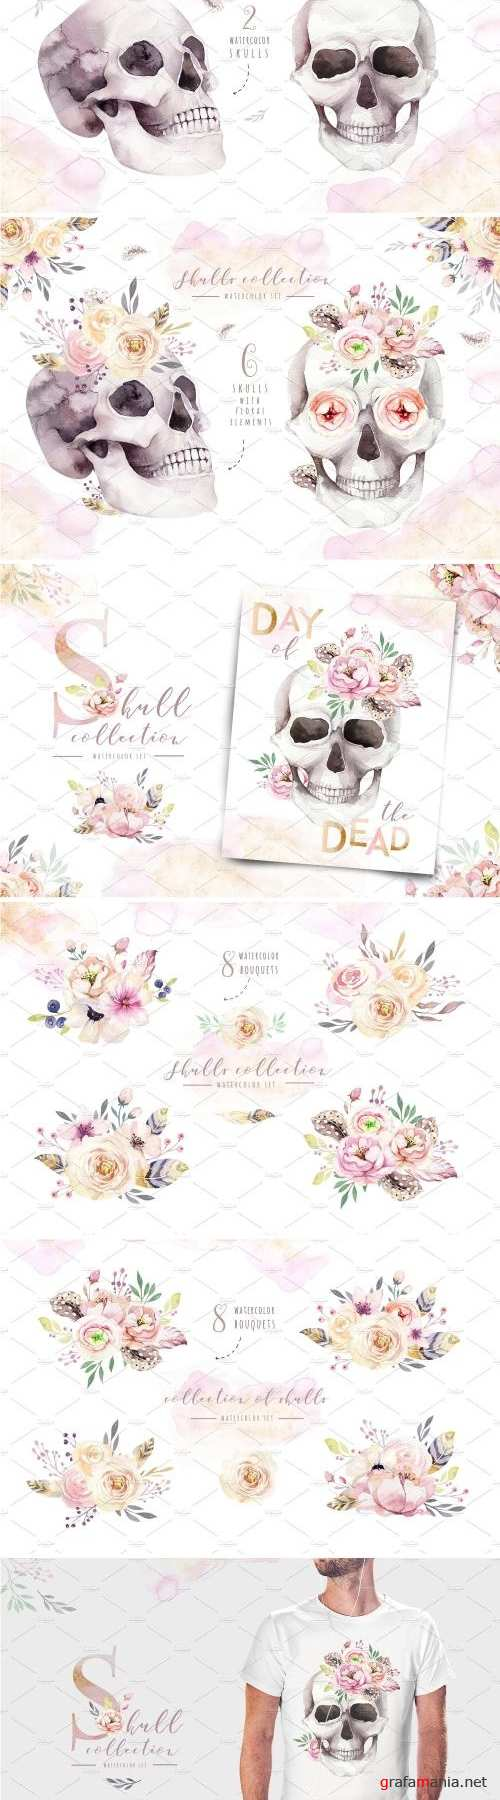 Day of The Dead Watercolor set - 2739348